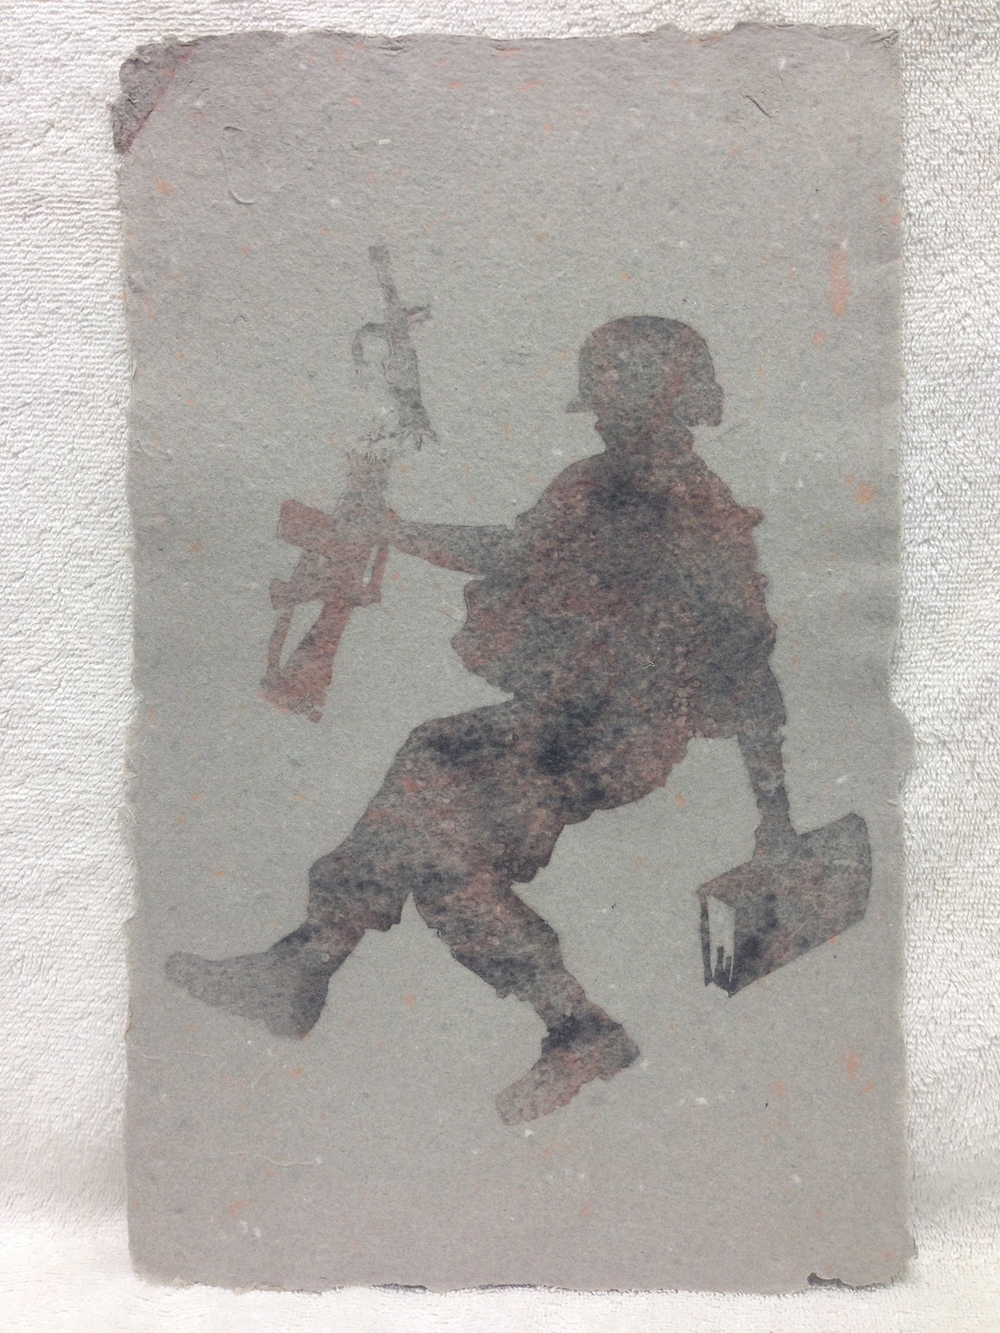 Jon Hausrath Army _Change of Heart_ 2010 Pulp spray on handmade paper made from military uniforms  IMG_0930.jpg